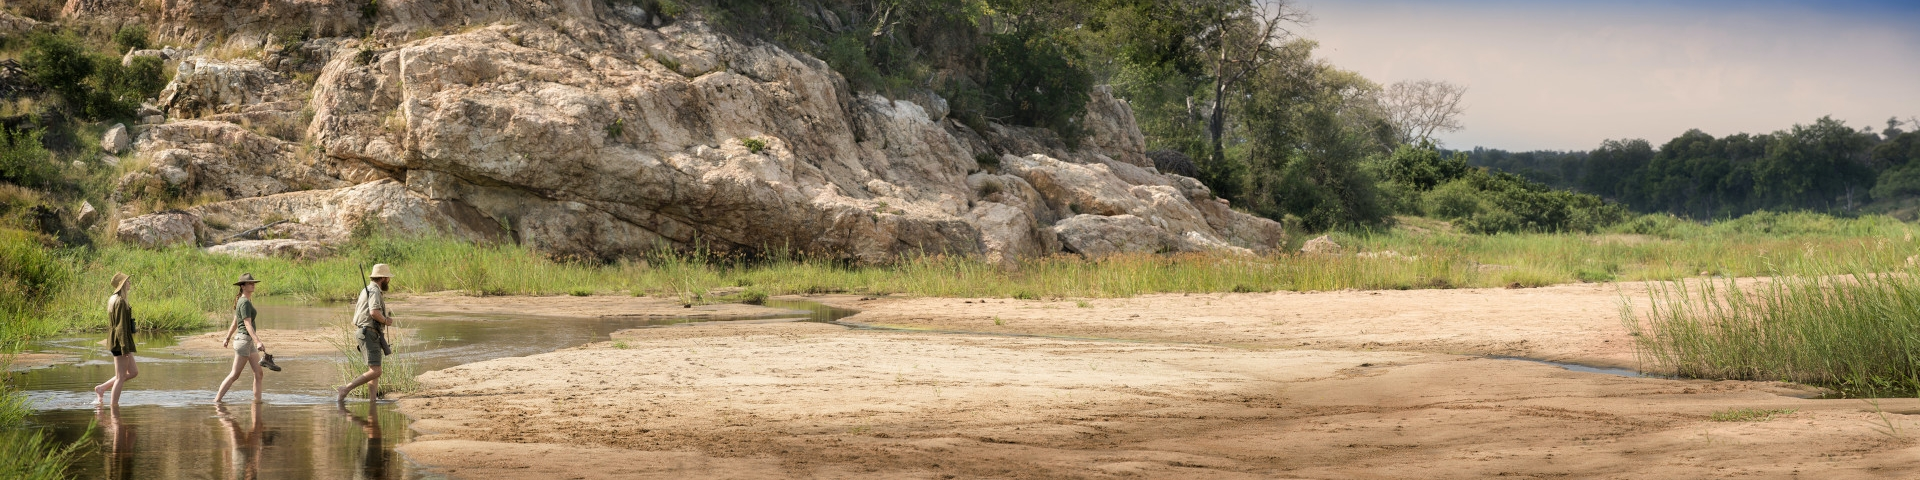 Banner travel guide klaserie private nature reserve south africa Makumu Private Game Lodge